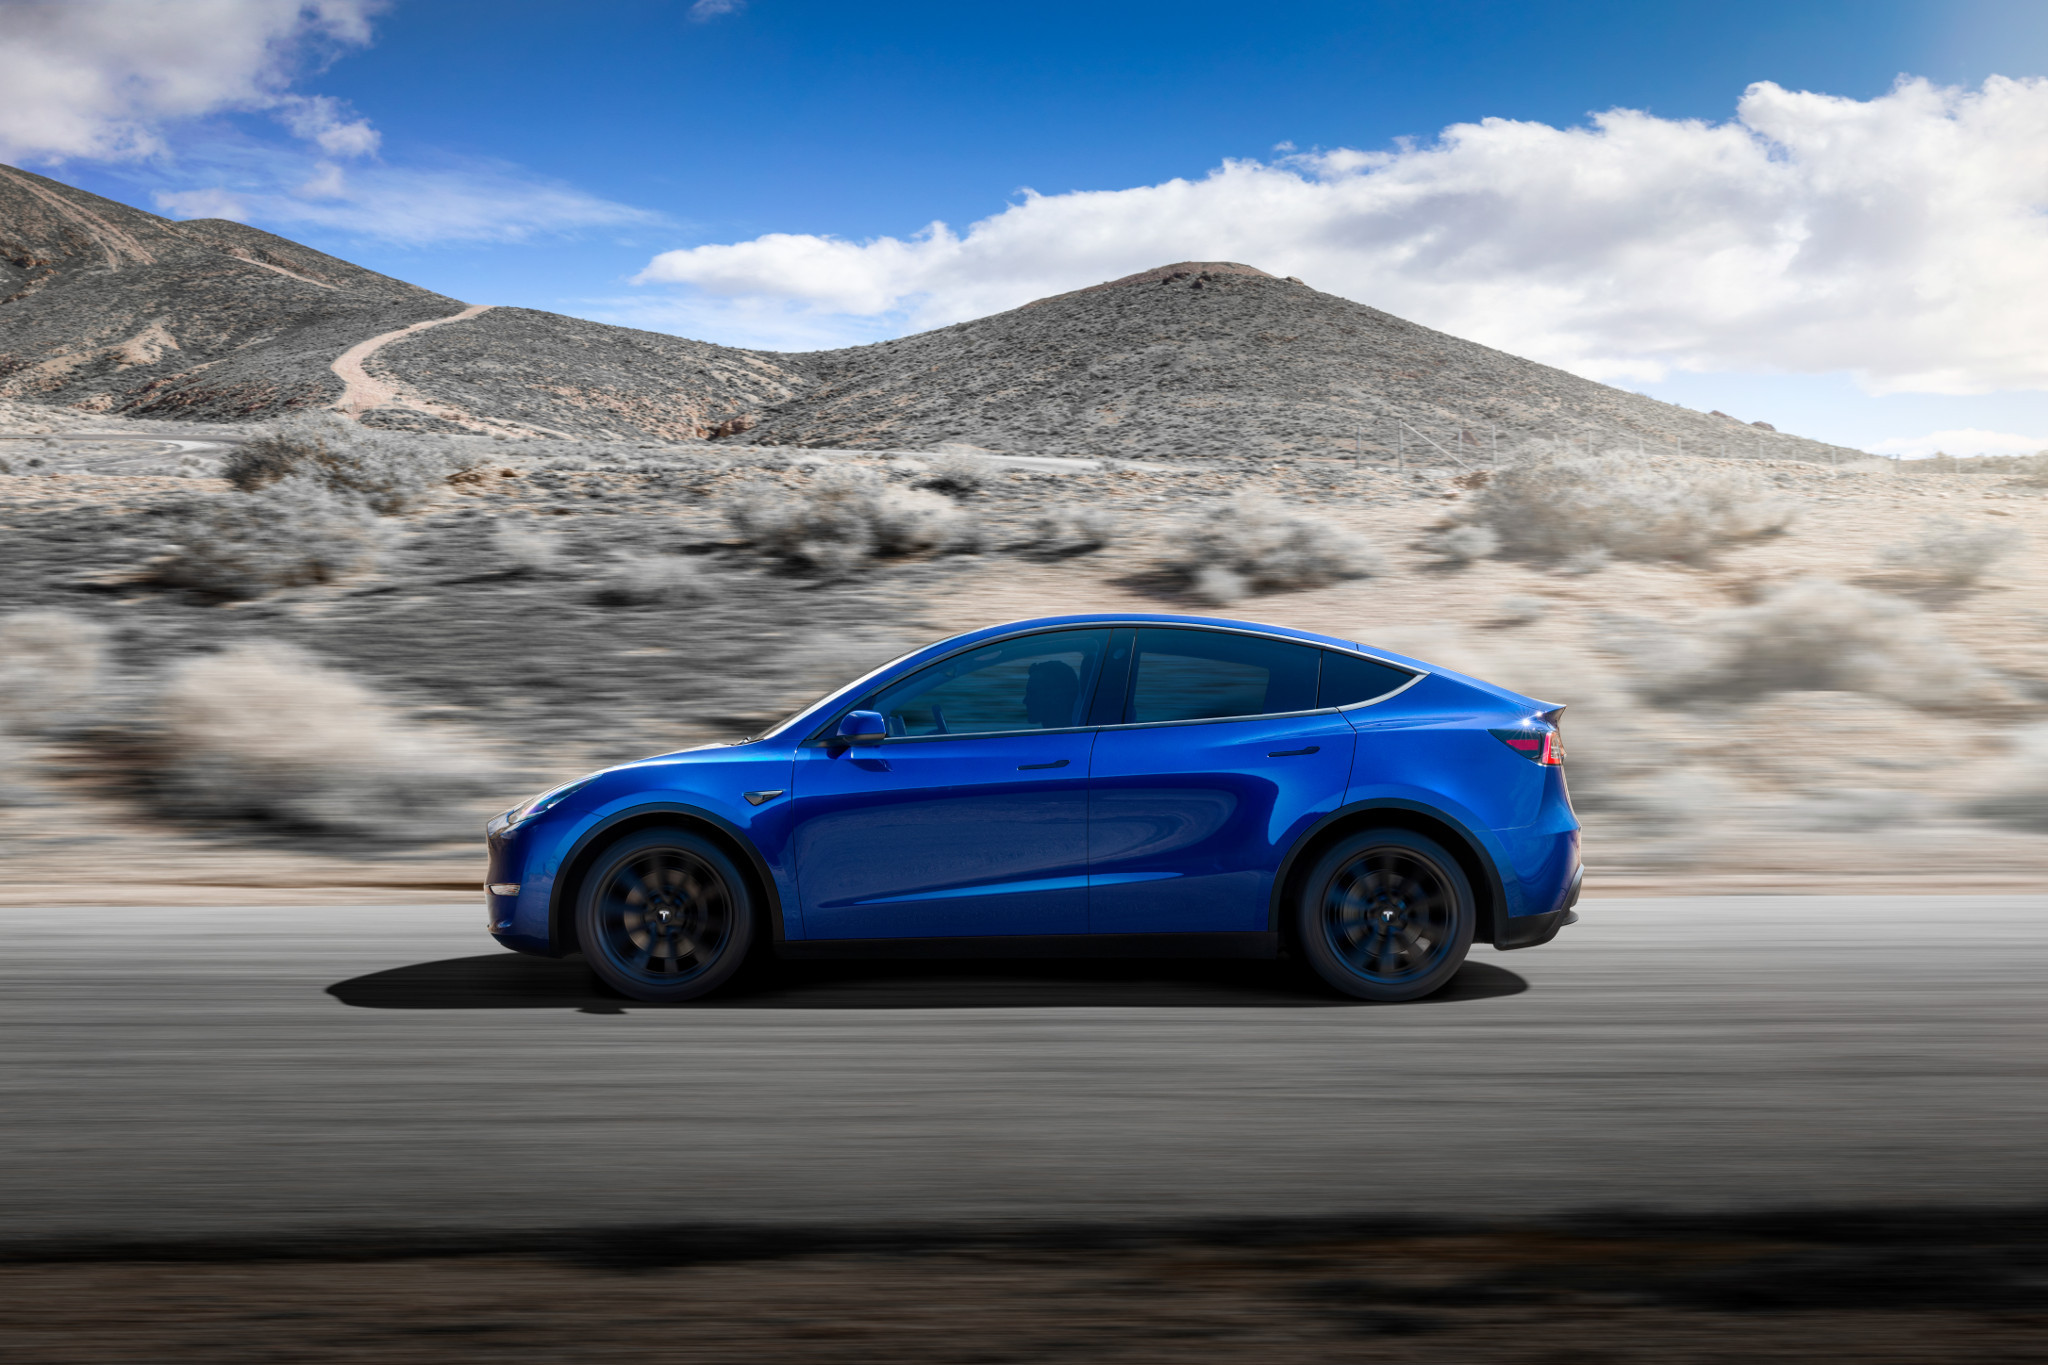 The Week in Tesla News: Model Y Gets EPA Range, Tesla's Brand Ranking Improves, Musk Talks Cybertruck and More | News from Cars.com